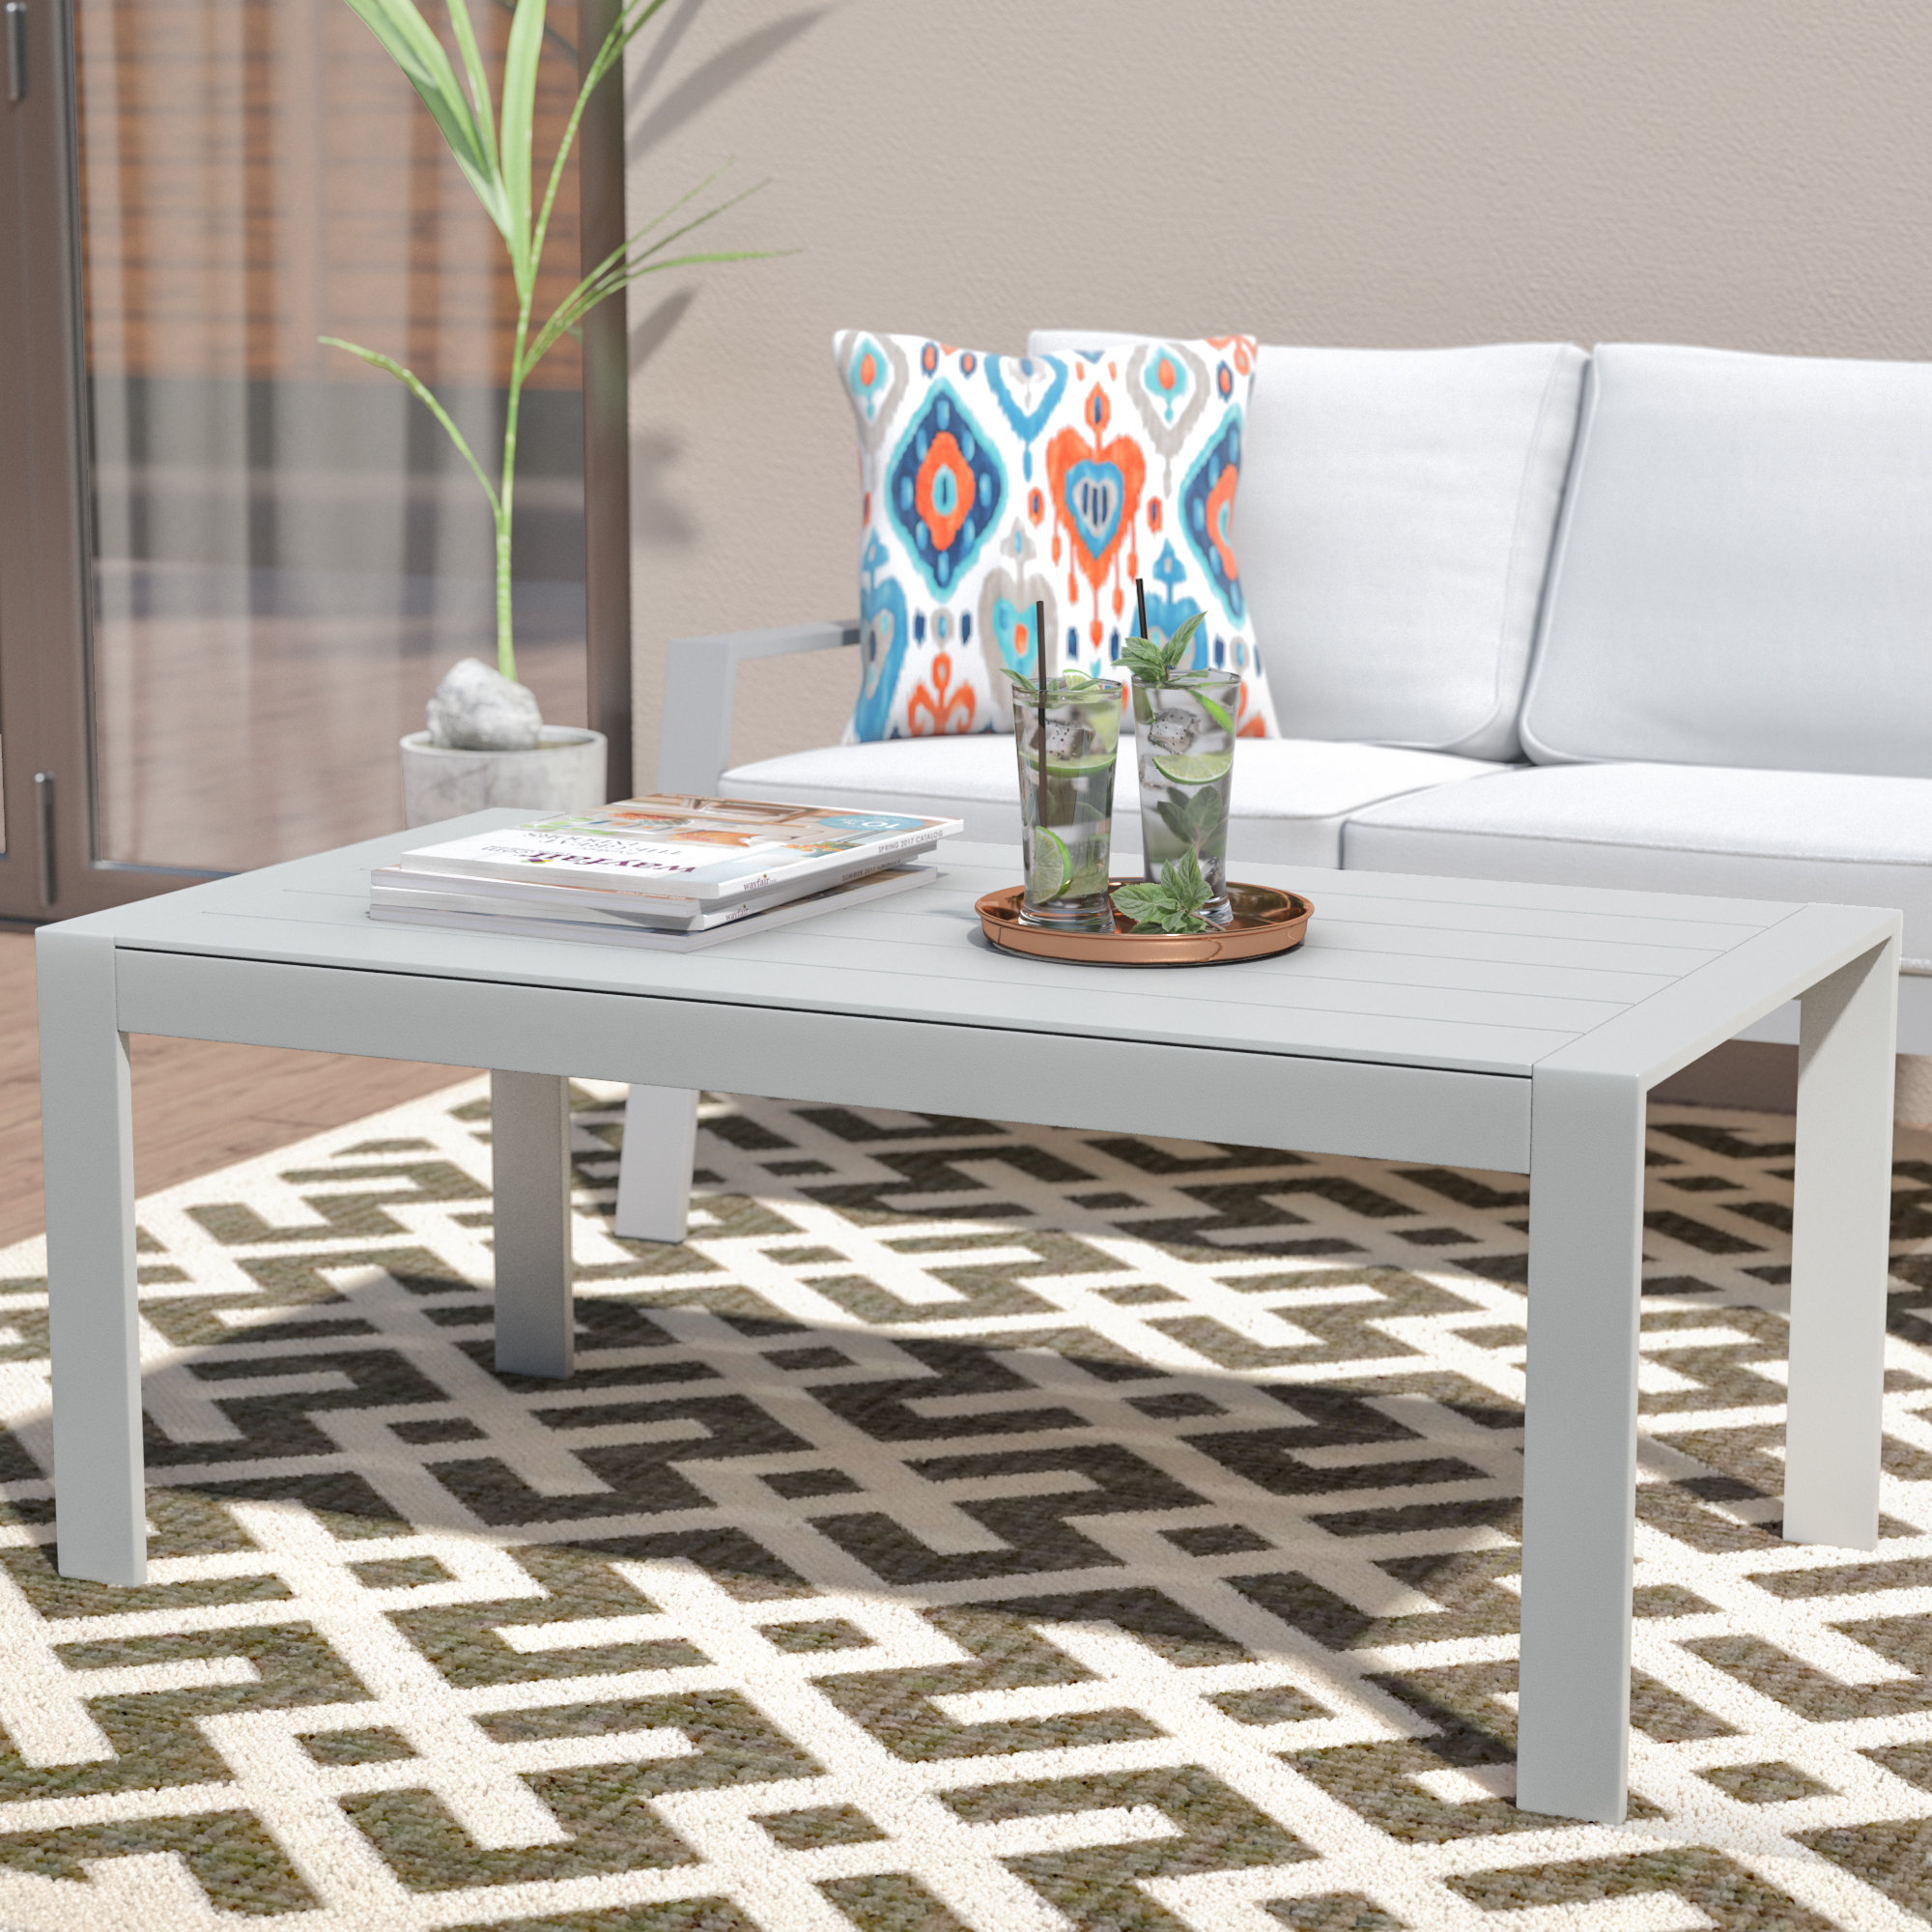 ivy bronx alexis contemporary coffee table patchen accent end home decor mirrors console with cabinets desk dark blue ashley furniture glass ikea childrens kitchen garden stool